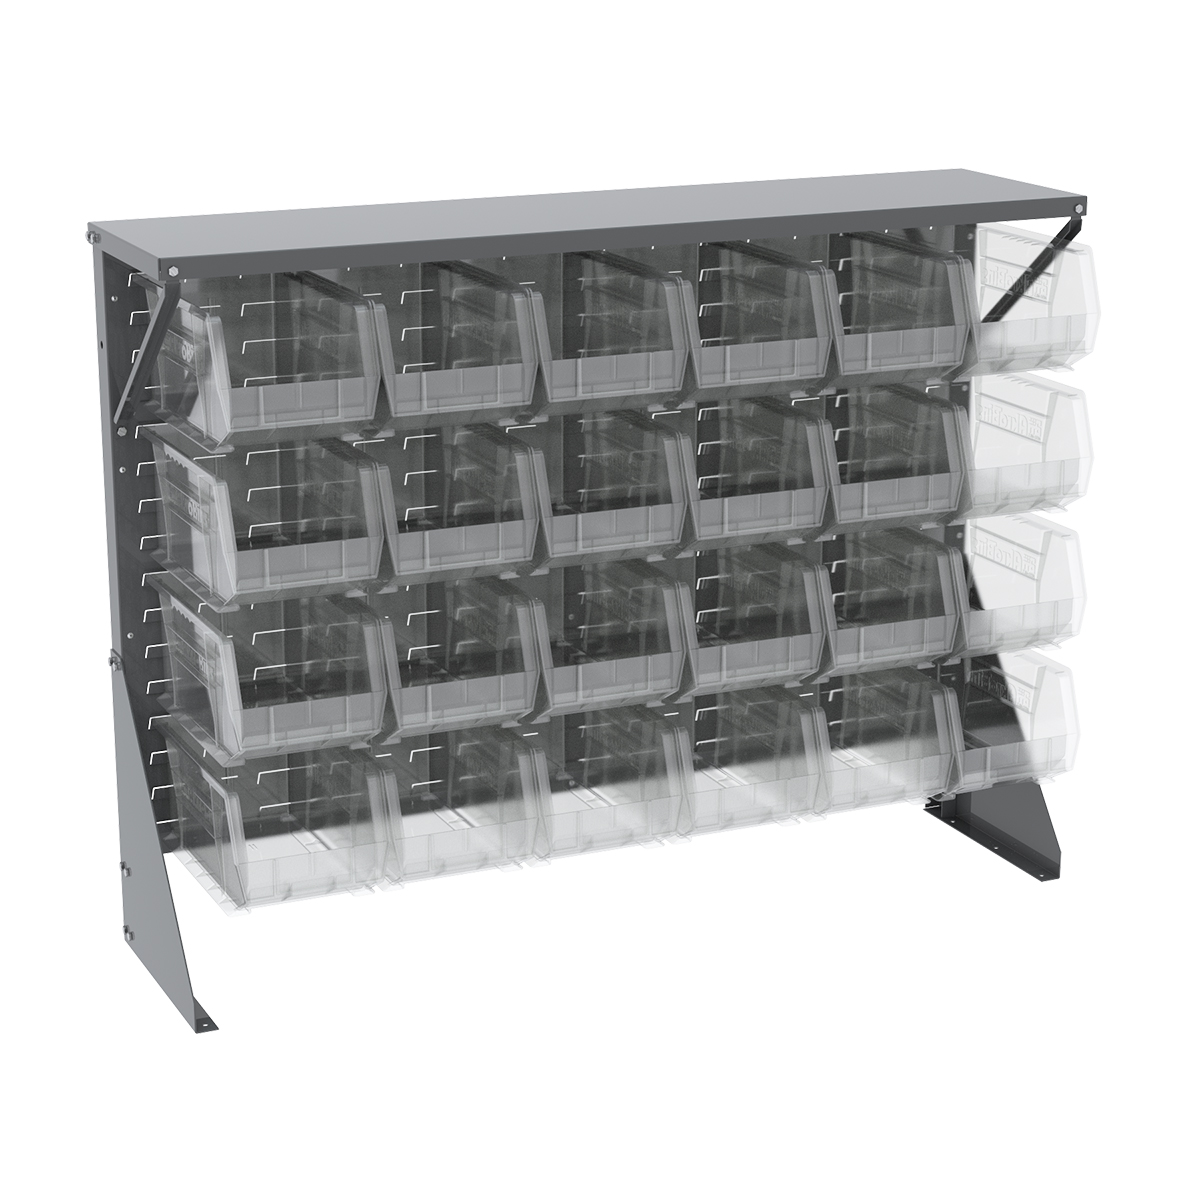 Item DISCONTINUED by Manufacturer.  Low Profile Floor Rack, 1-Sided, Shelf w/ 24 AkroBins, Gray/Clear (30650GY240SC).  This item sold in carton quantities of 1.